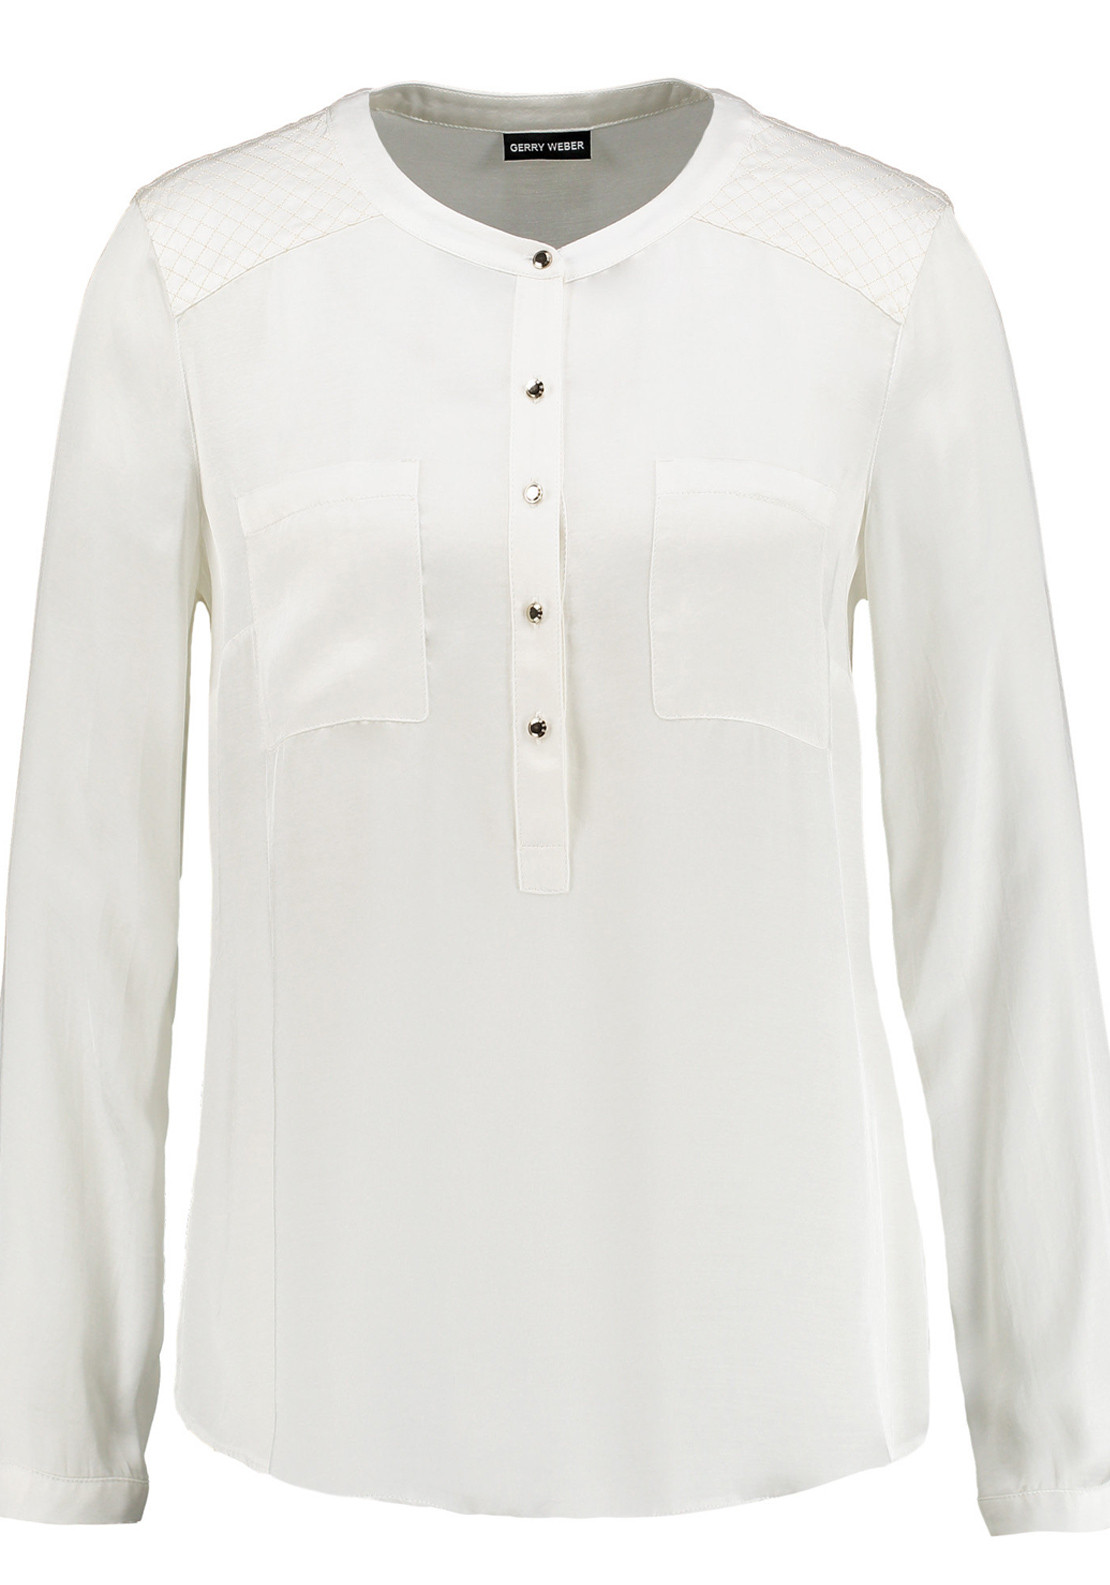 Gerry Weber Tunic Style Long Sleeve Blouse, Ivory